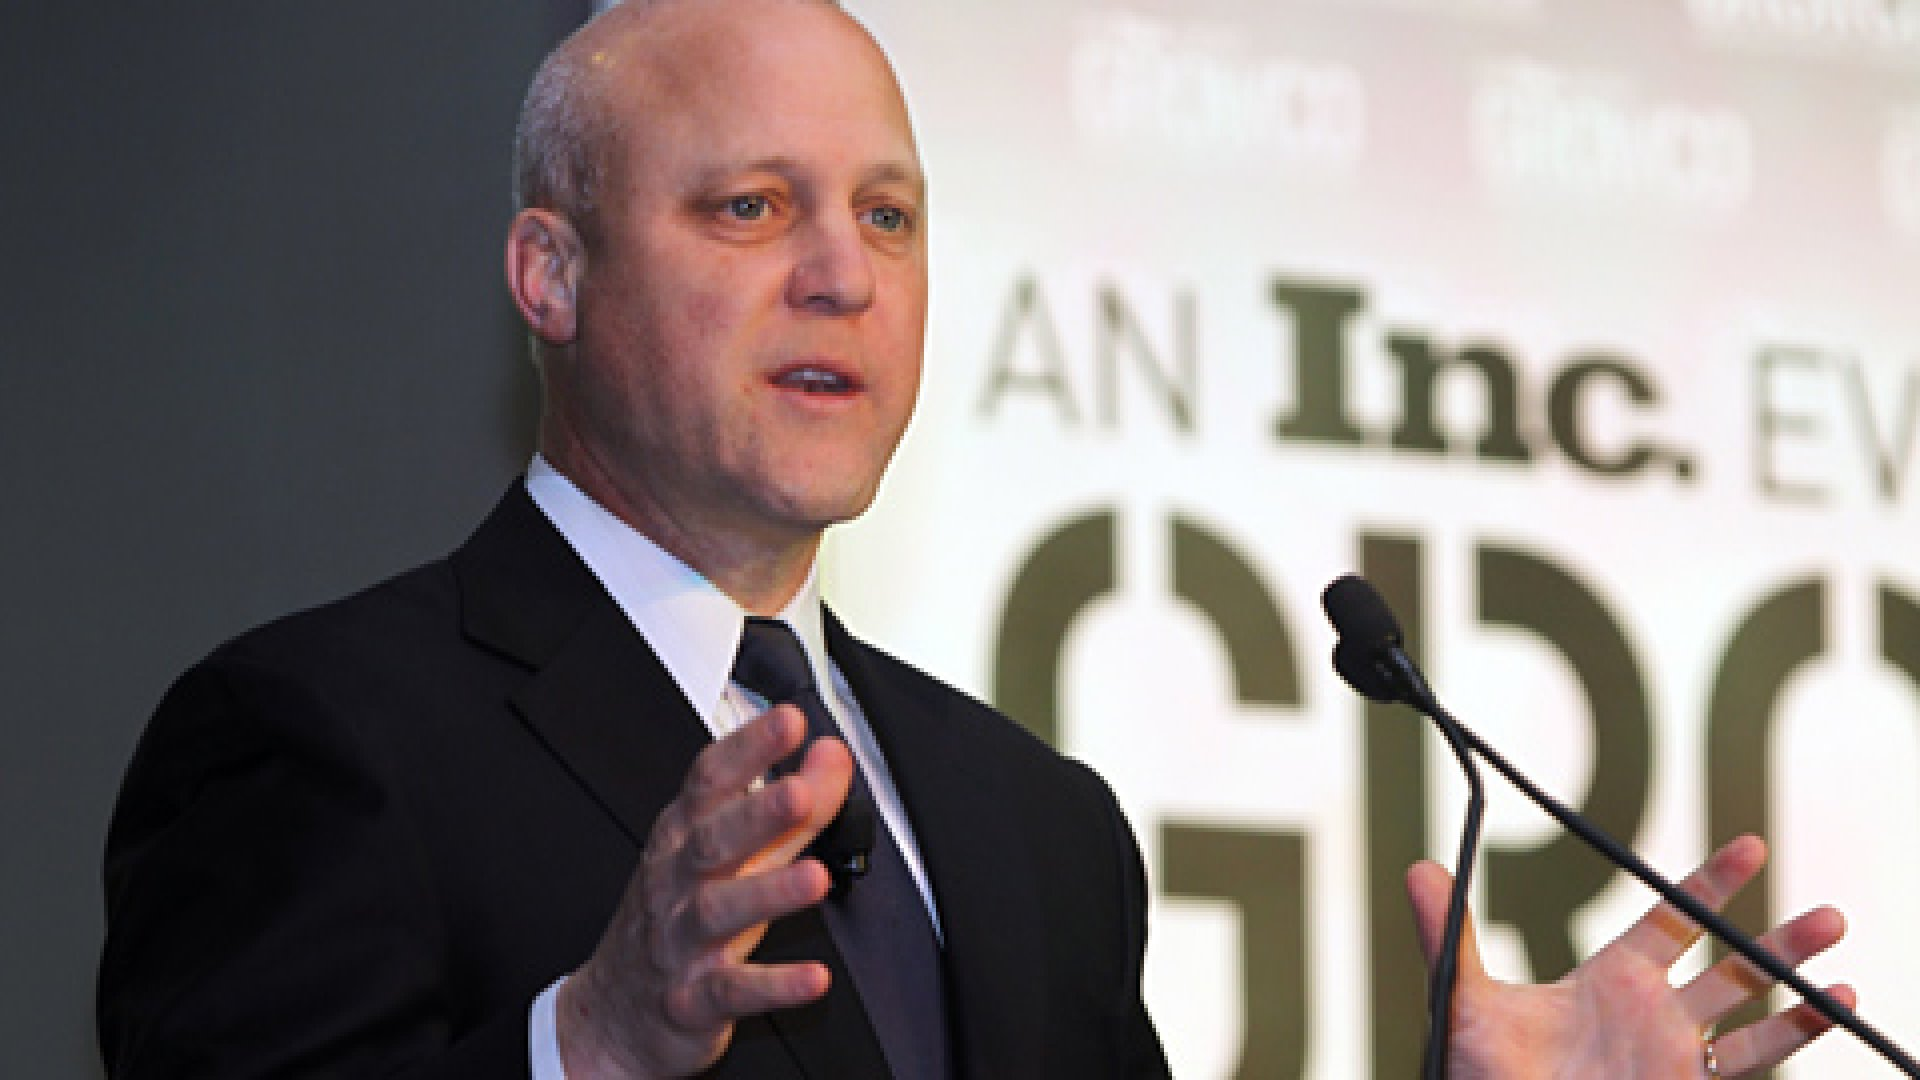 New Orleans Mayor Mitch Landrieu discussing what it takes to succeed.